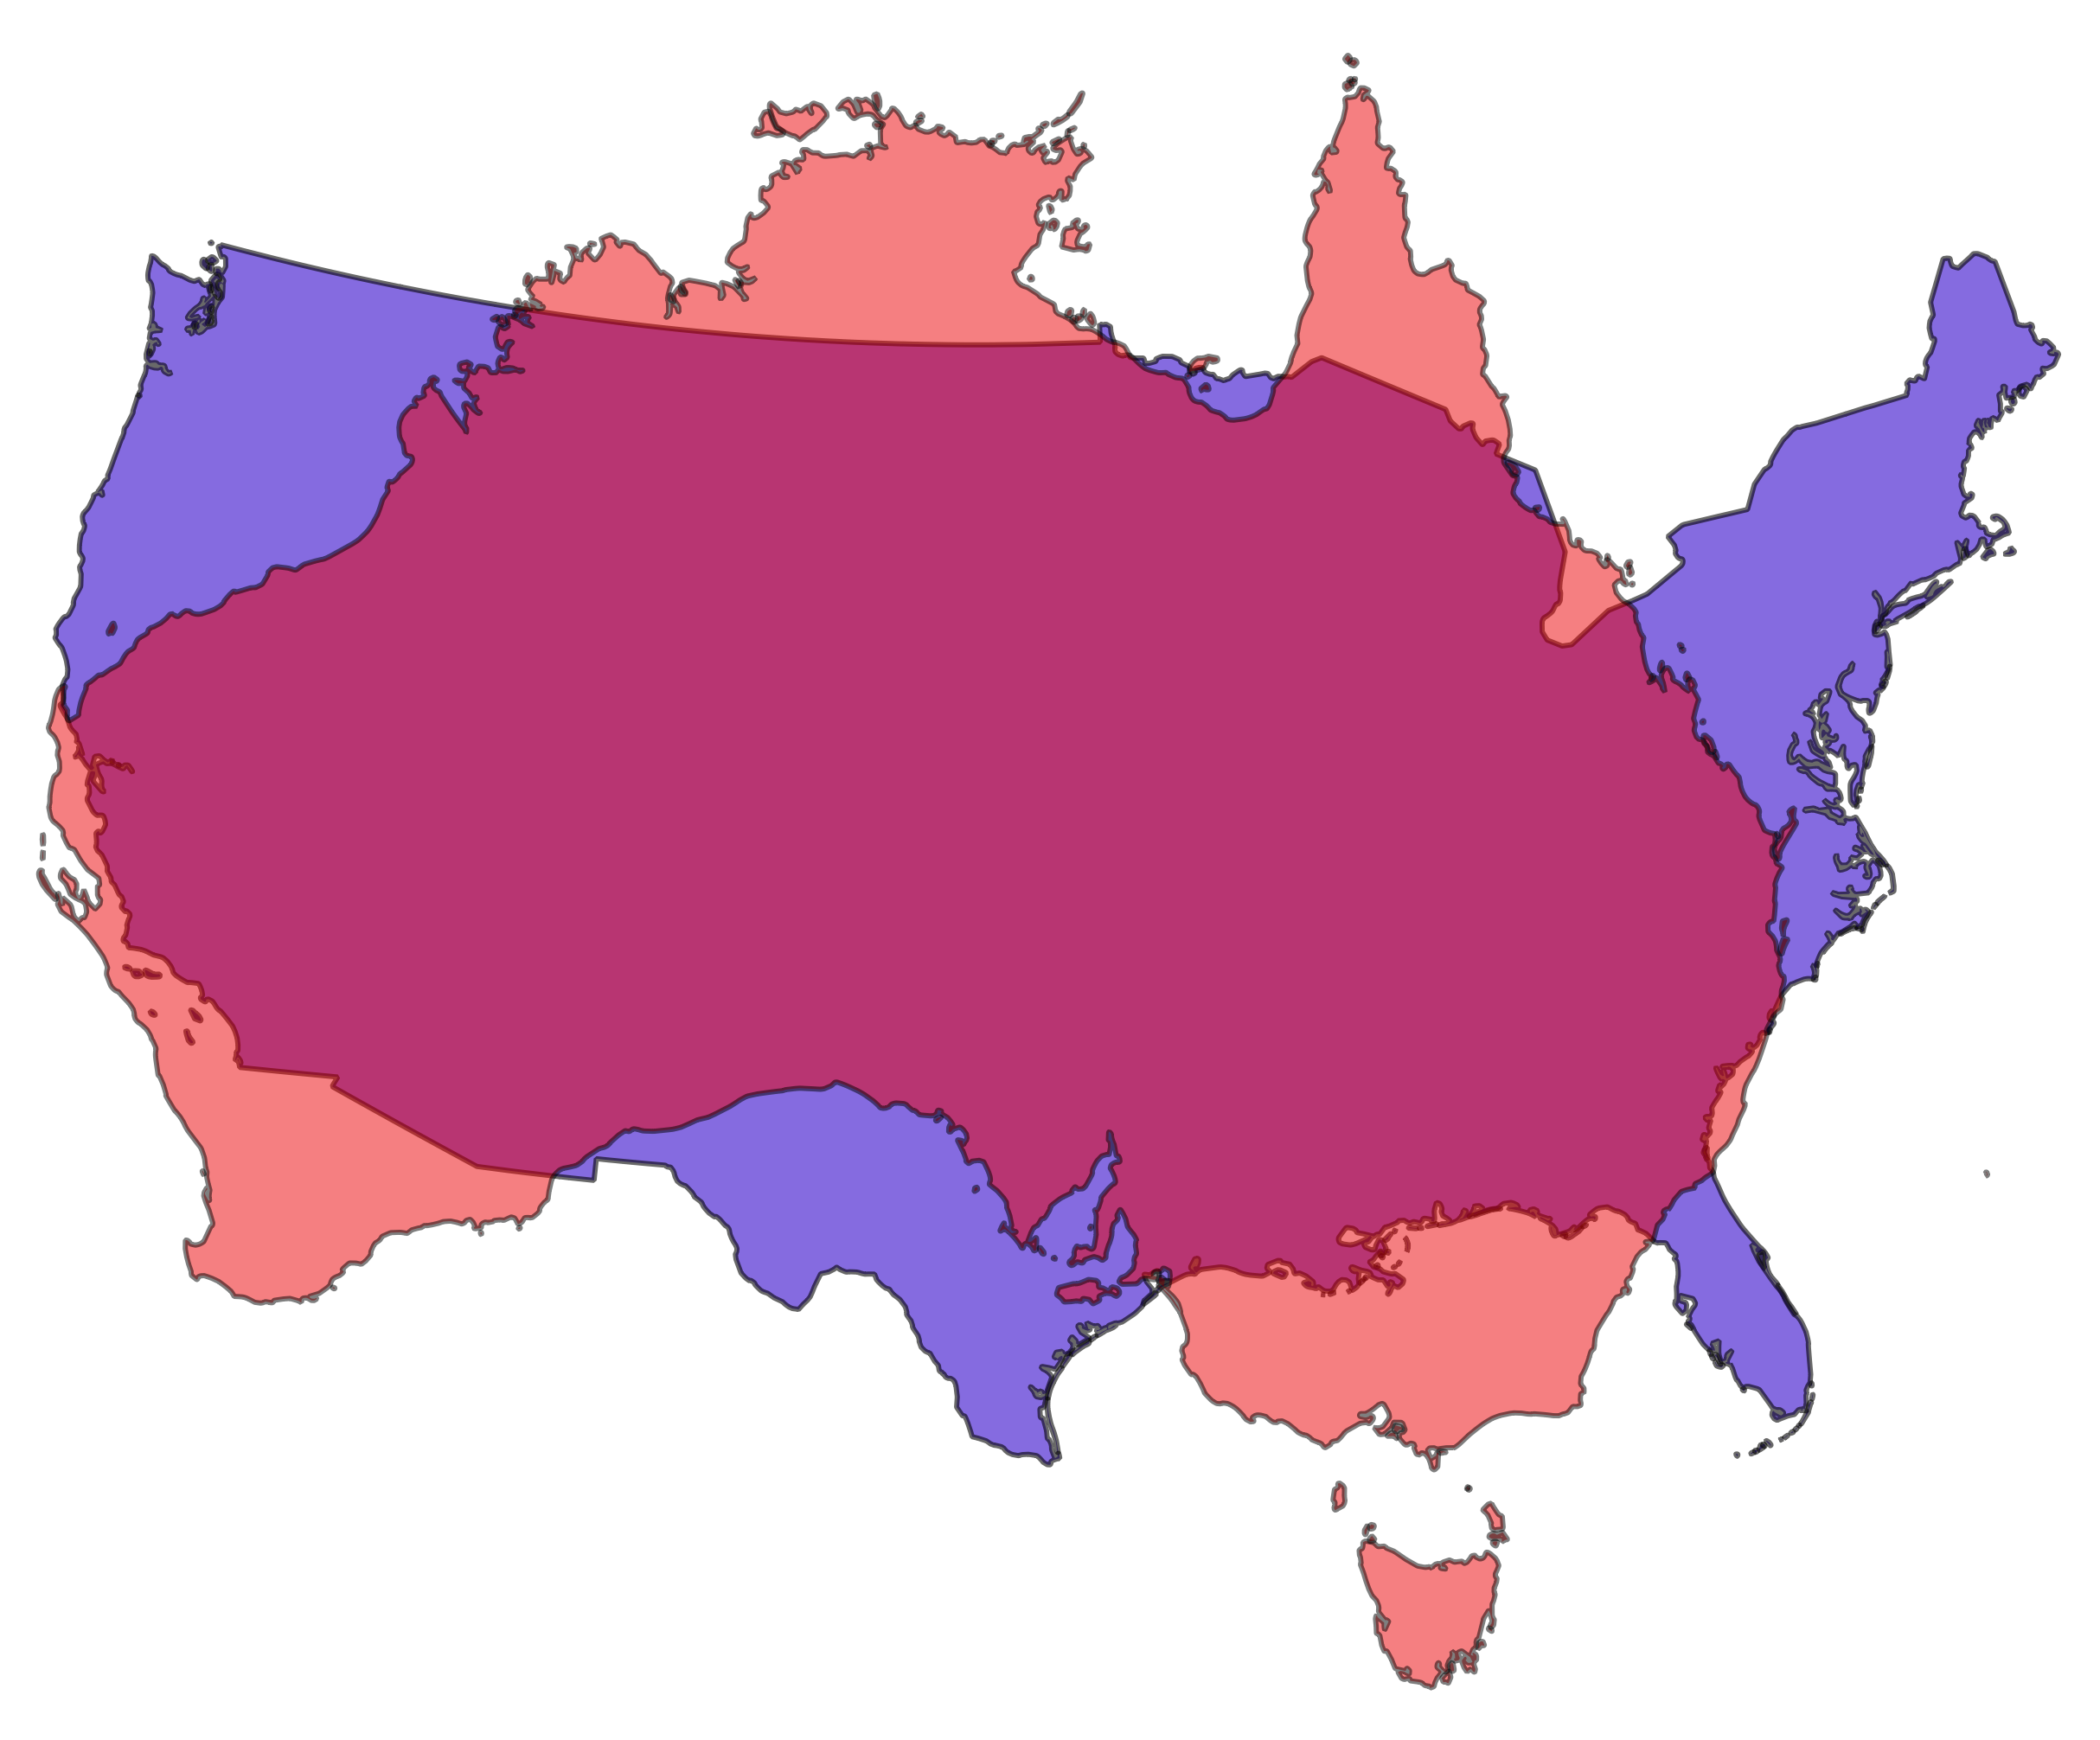 continental us and australia comparison by jamesgeocom released under creative commons attribution share